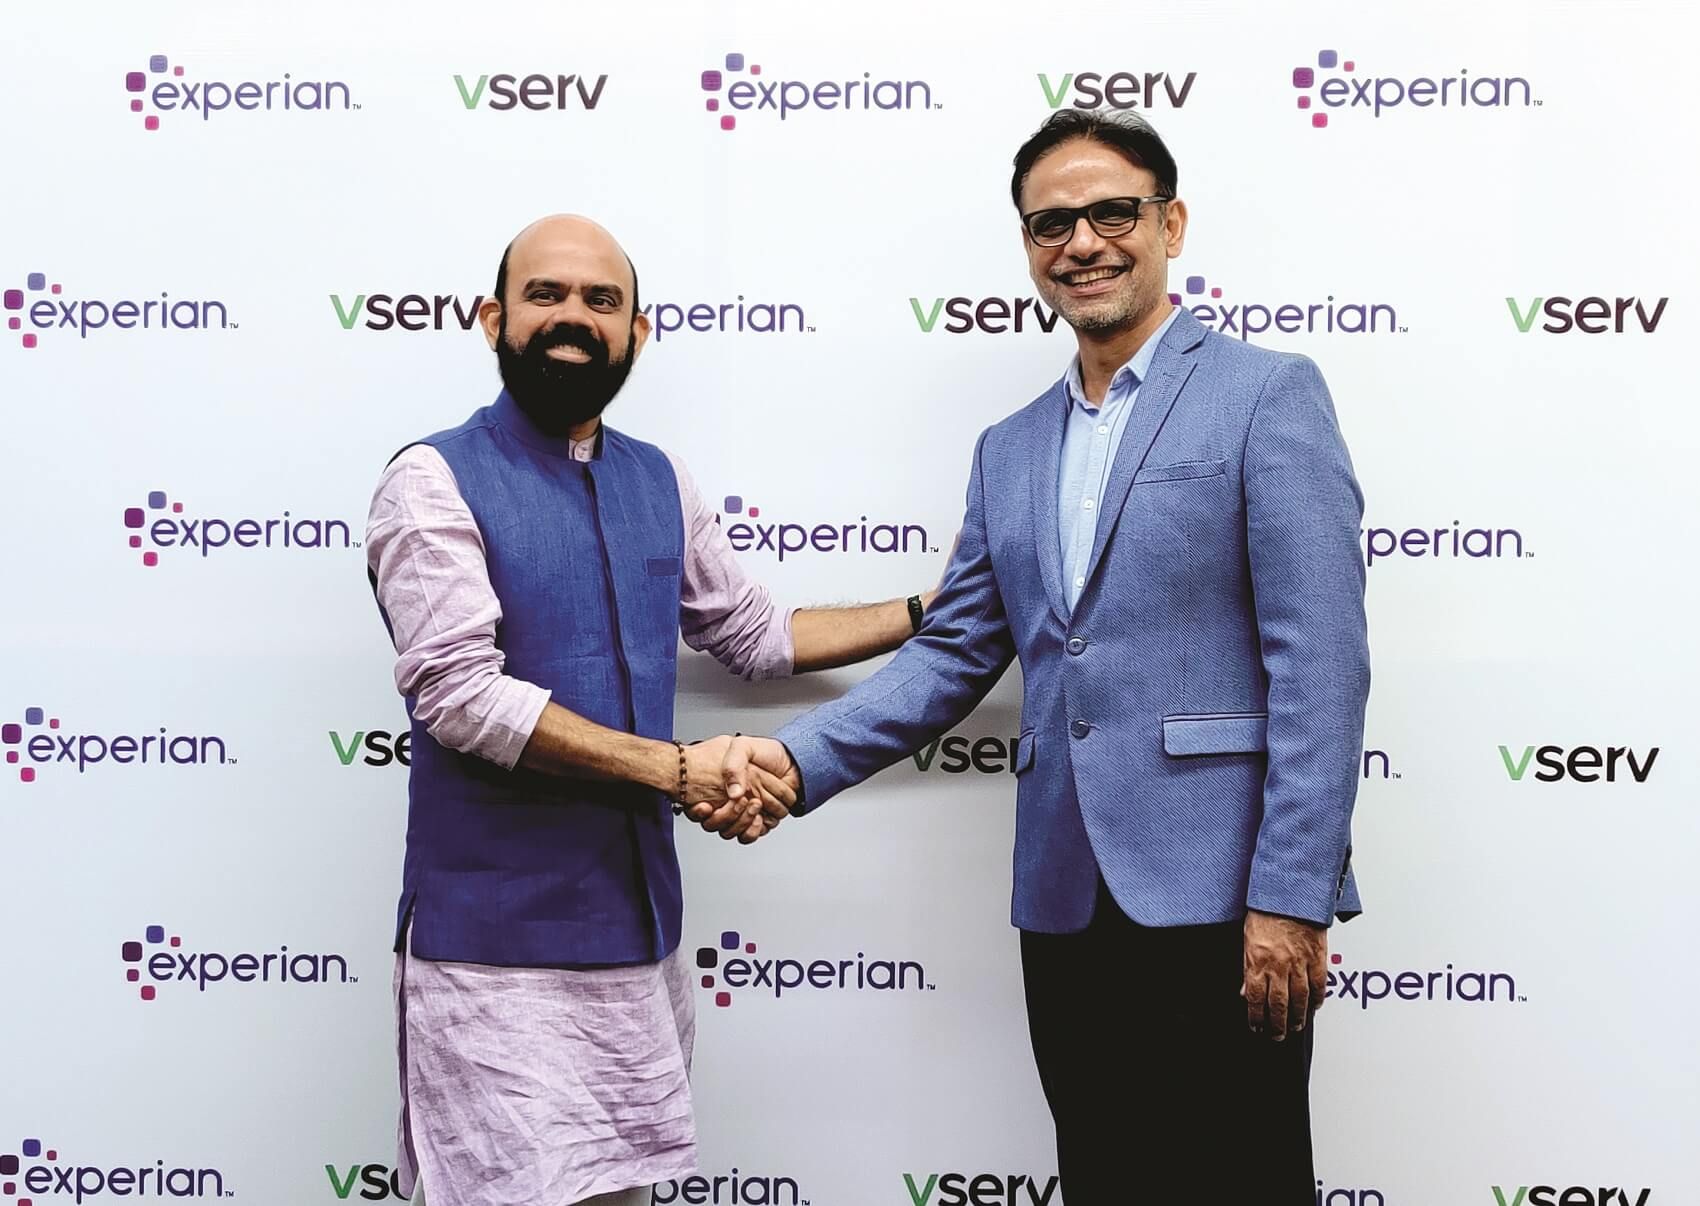 Experian invests in Vserv to enable friction-free digital onboarding experience of consumers for the BFSI sector